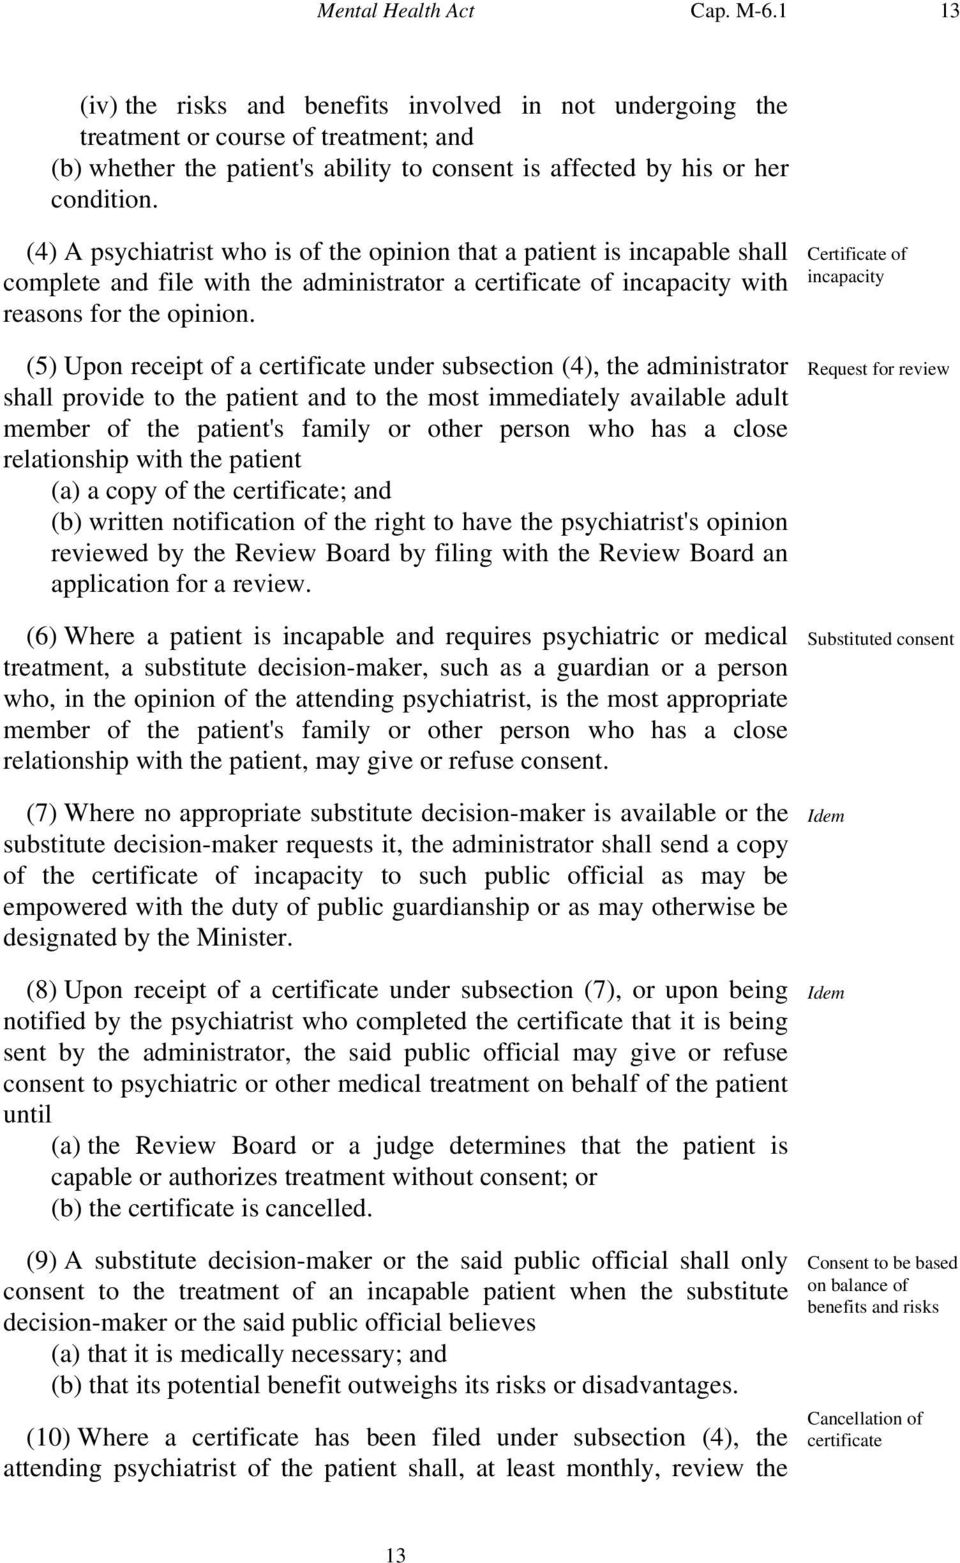 (4) A psychiatrist who is of the opinion that a patient is incapable shall complete and file with the administrator a certificate of incapacity with reasons for the opinion.